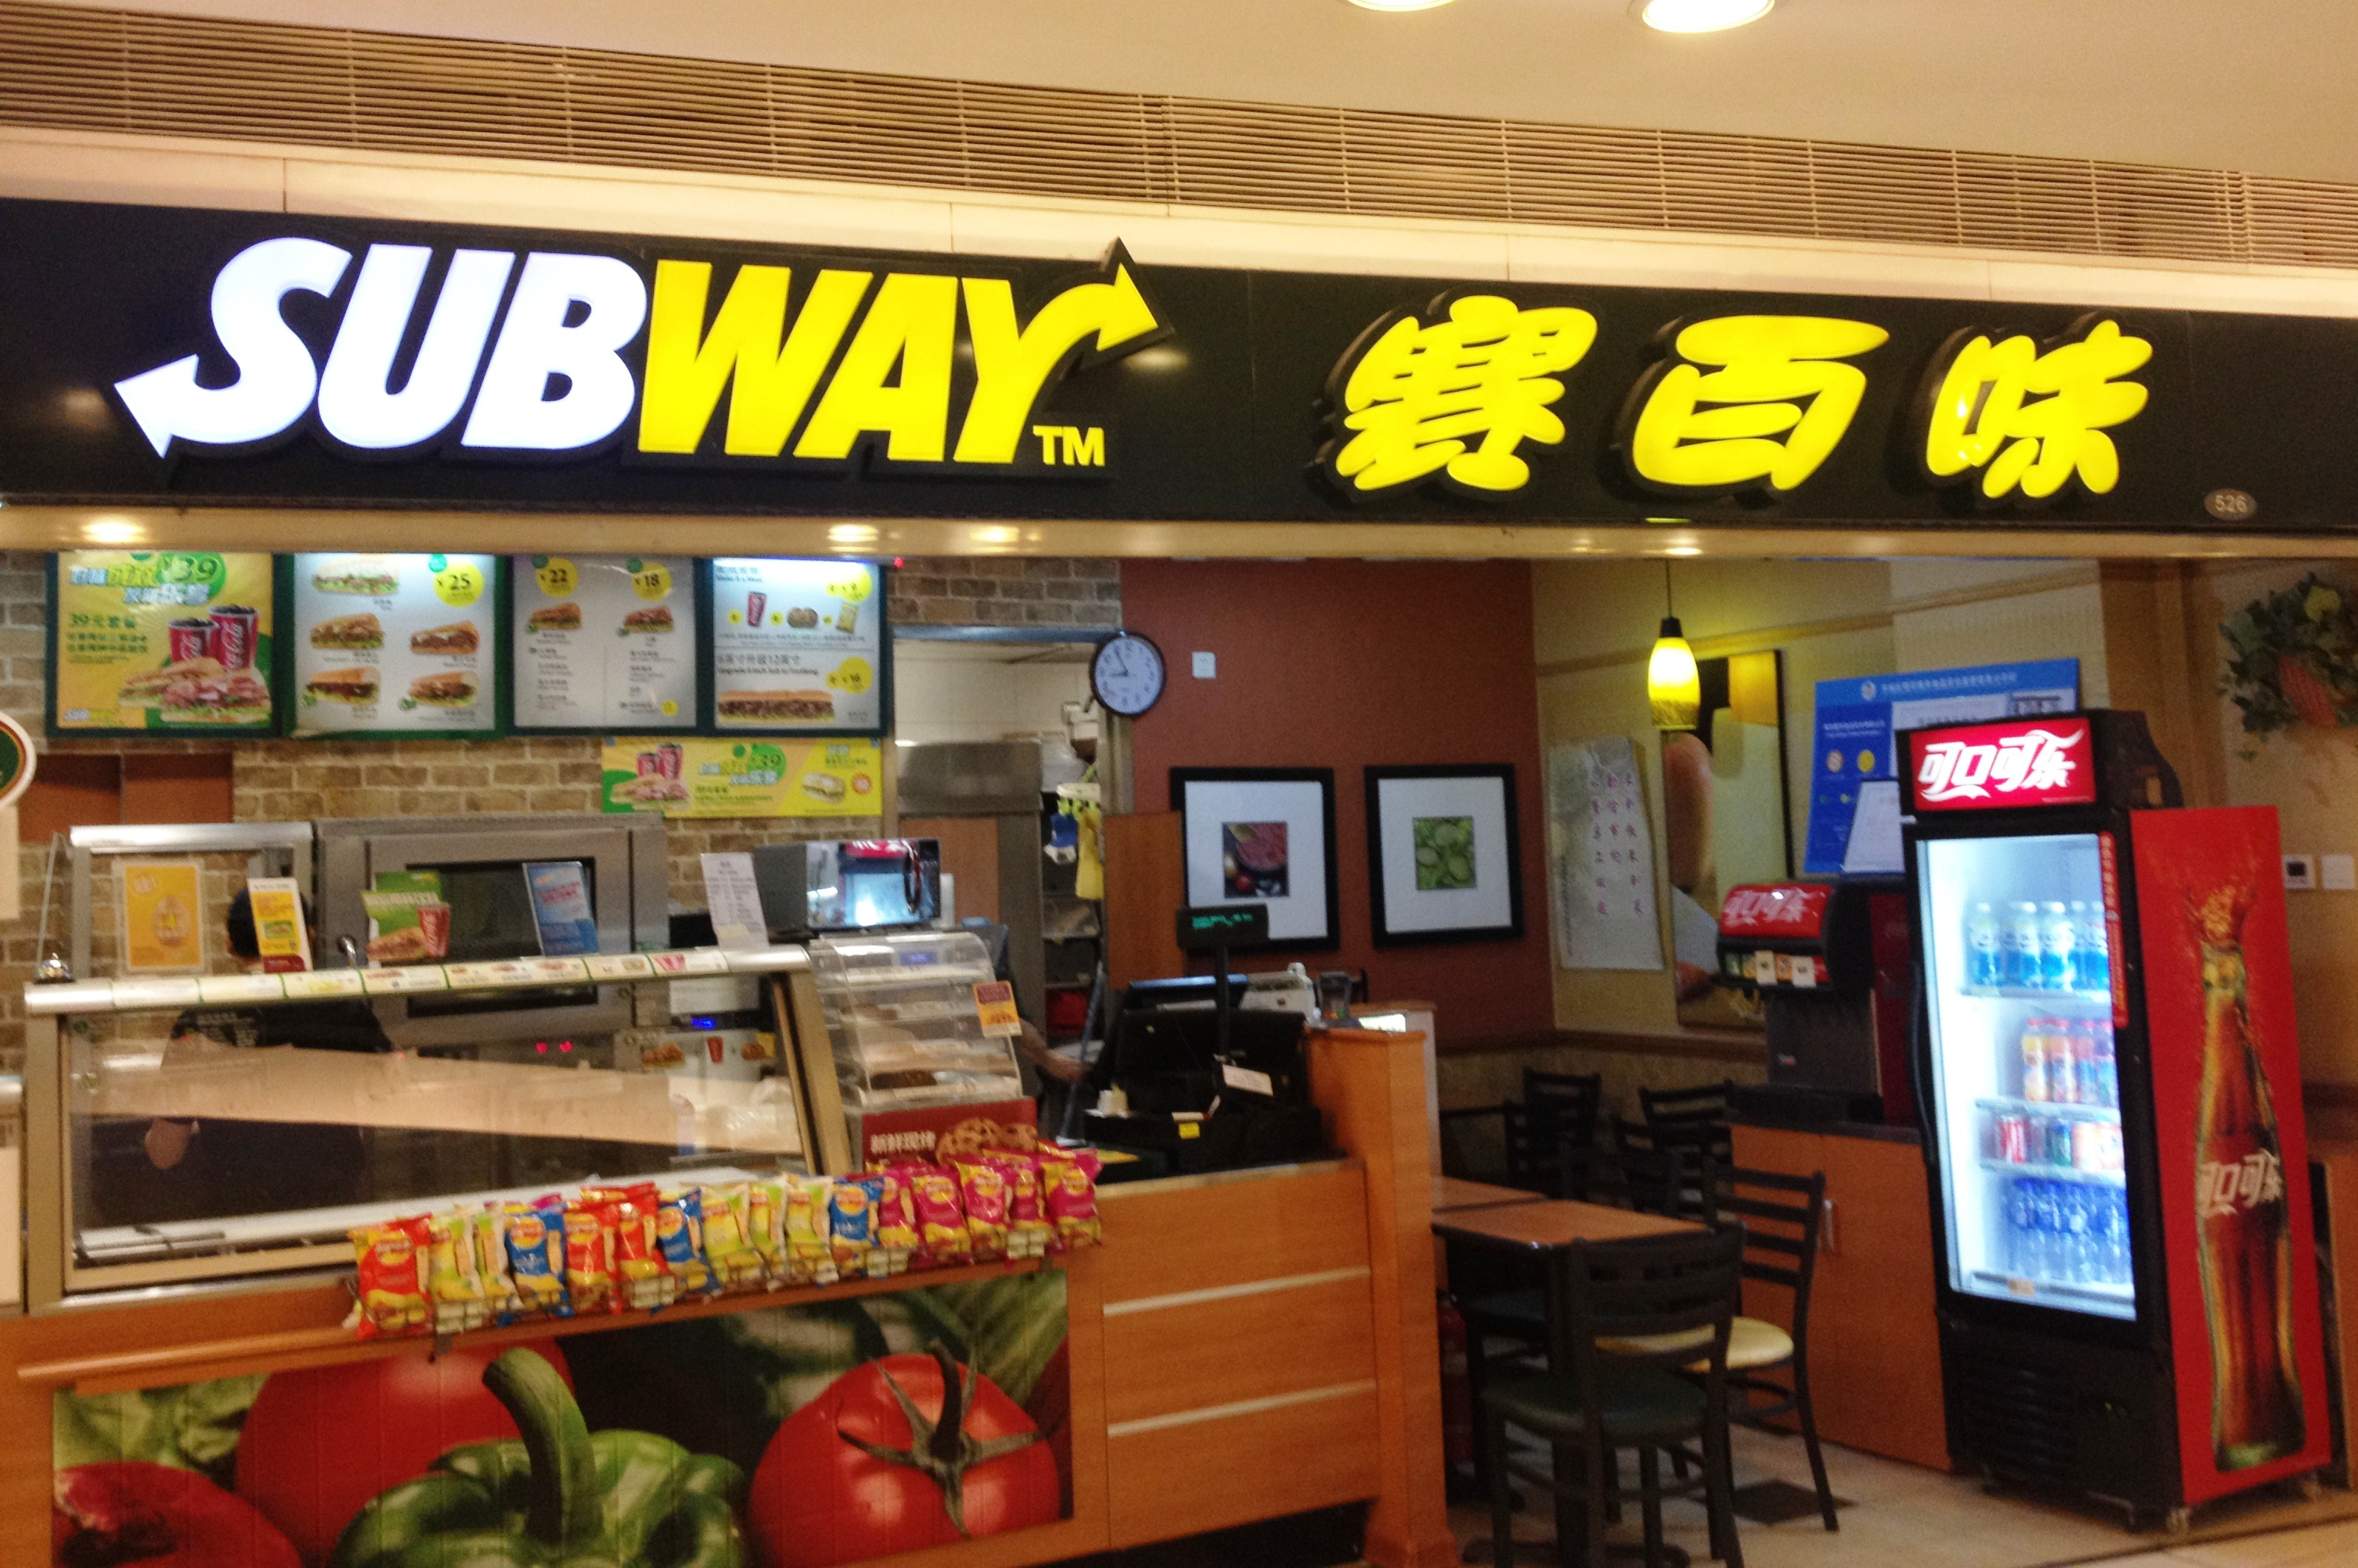 They even had Subway in Beijing mall.jpg